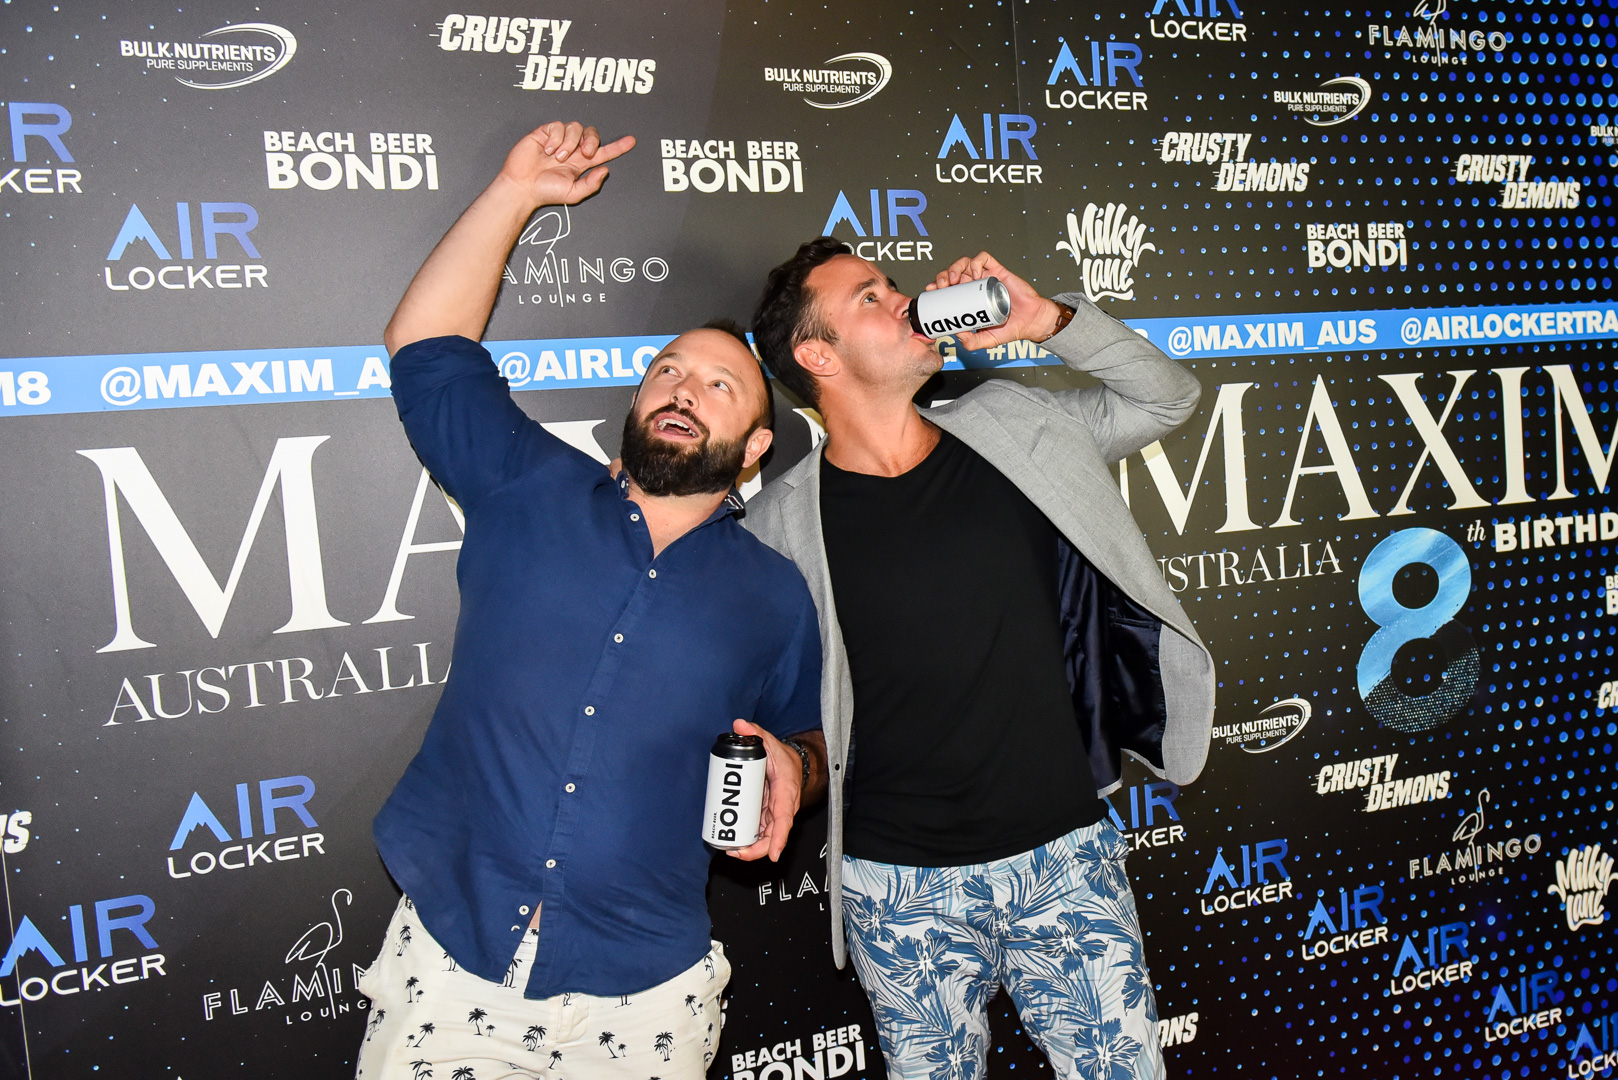 MAXIM_Australia_8th Birthday_20